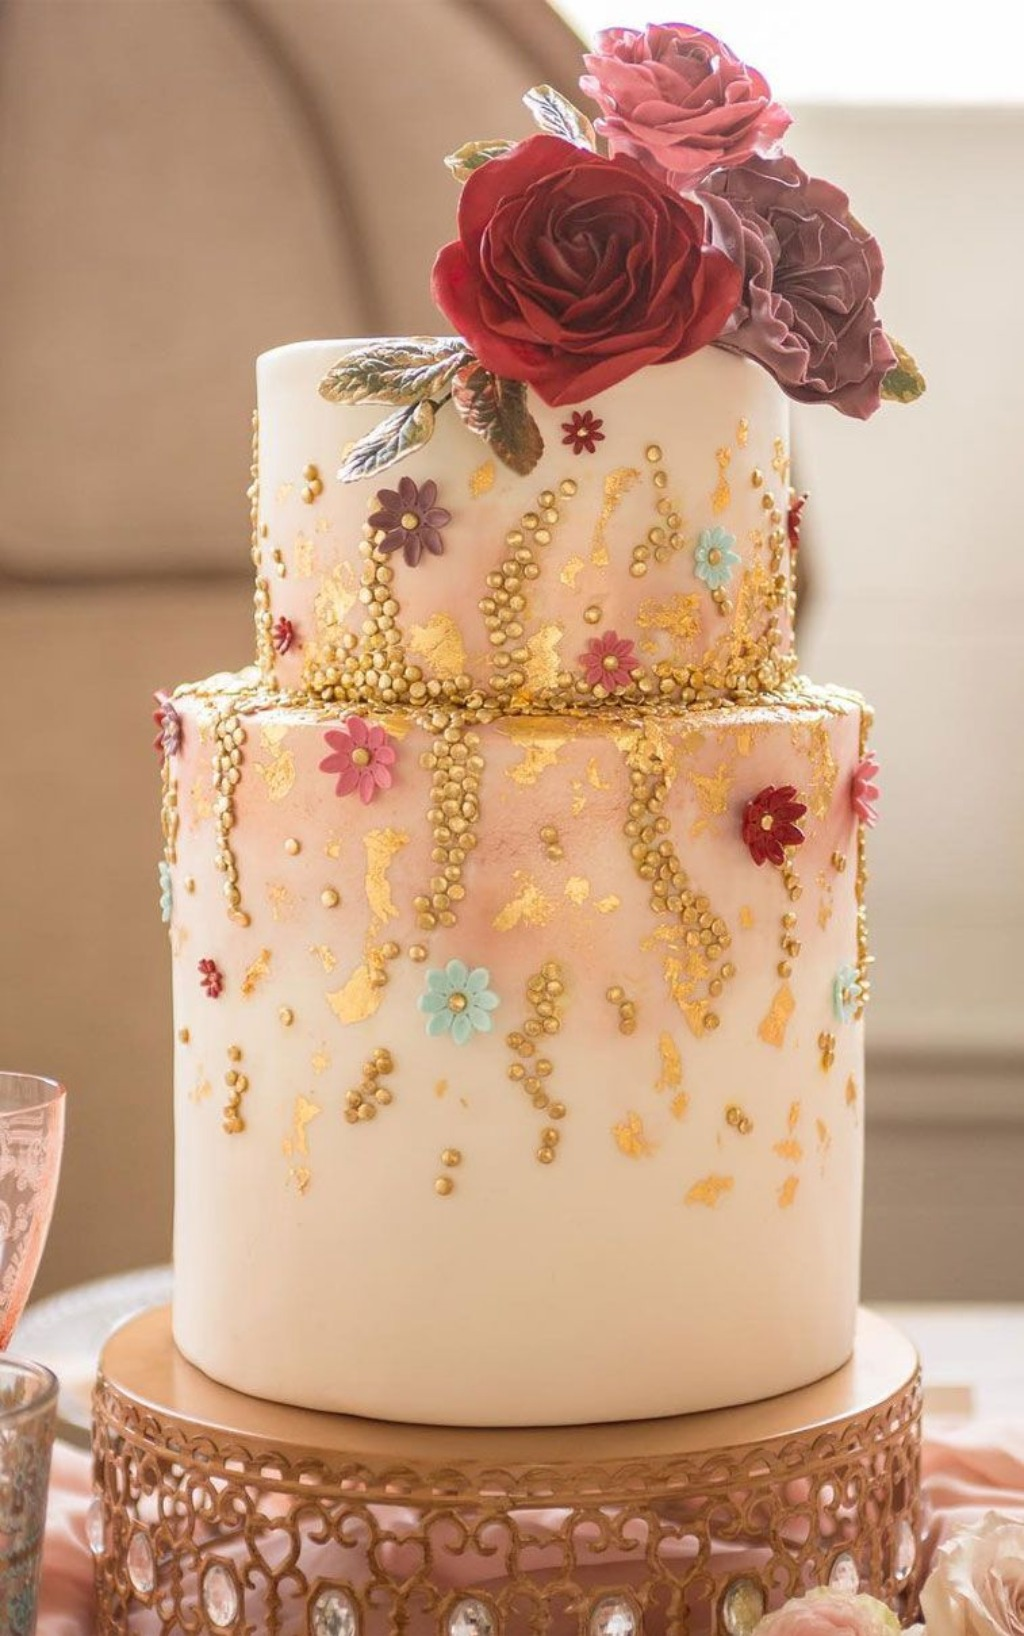 Moroccan Jeweled Wedding Cake Stand created by Opulent Treasures with Jeweled Wedding Cake by The Cake Flower